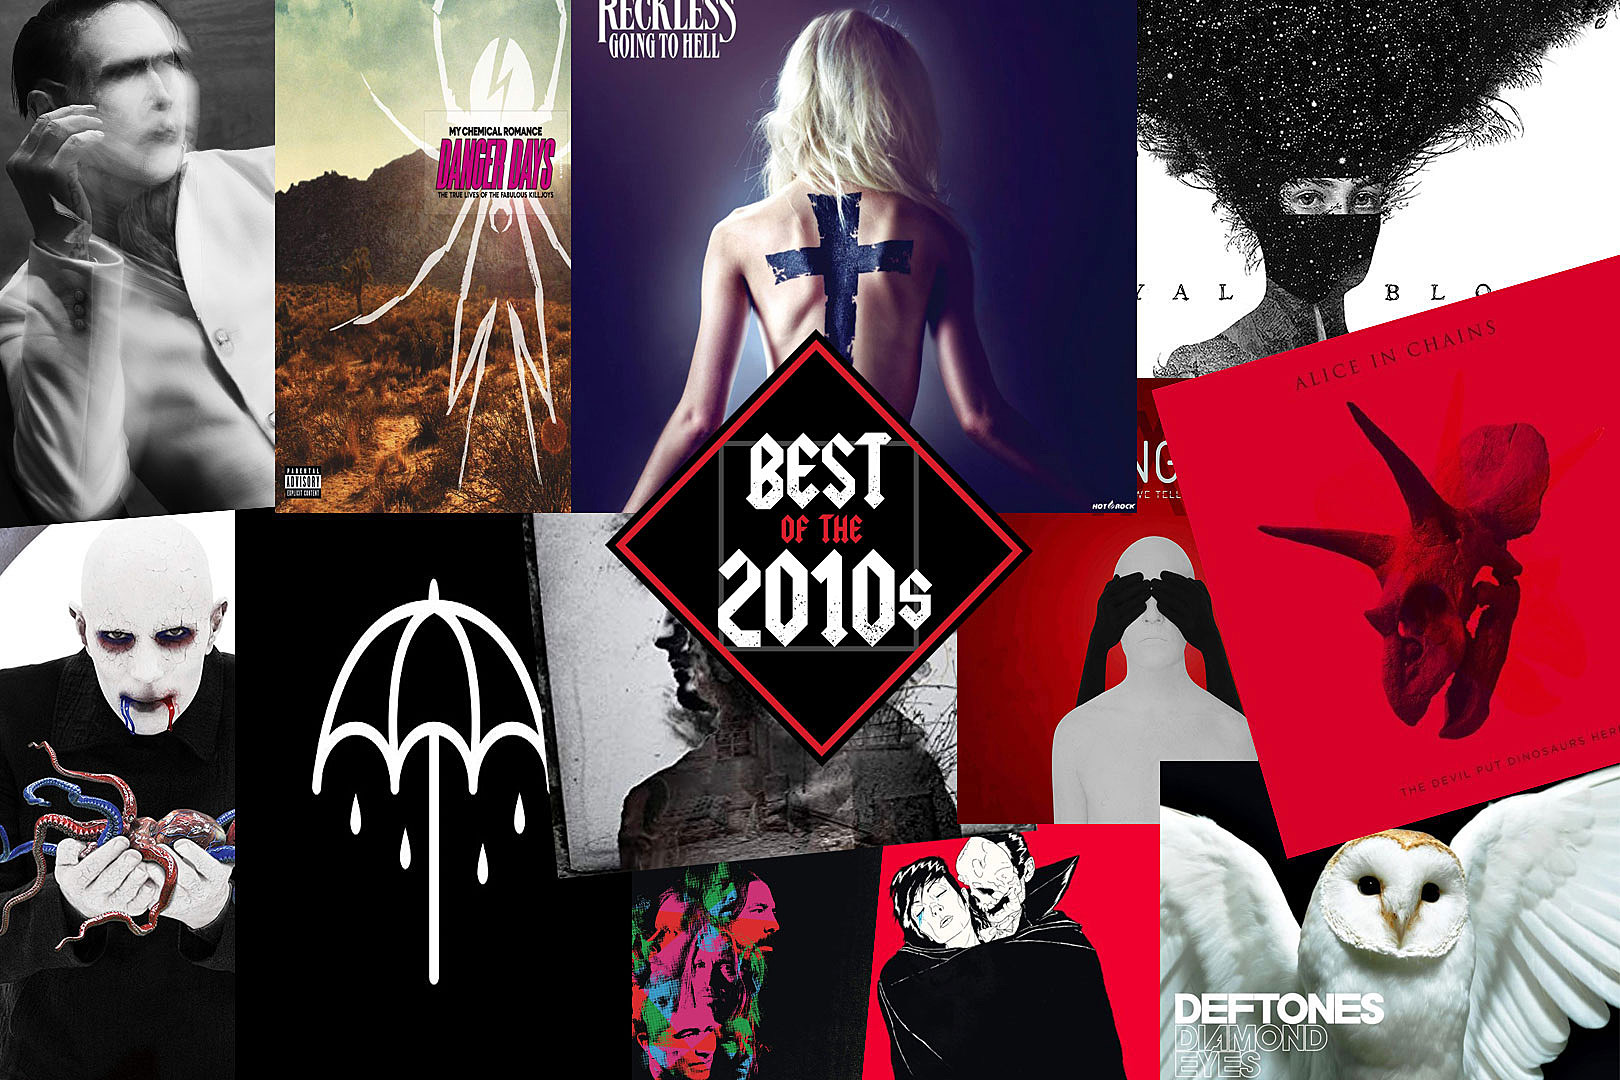 The 66 Best Metal Songs of the Decade